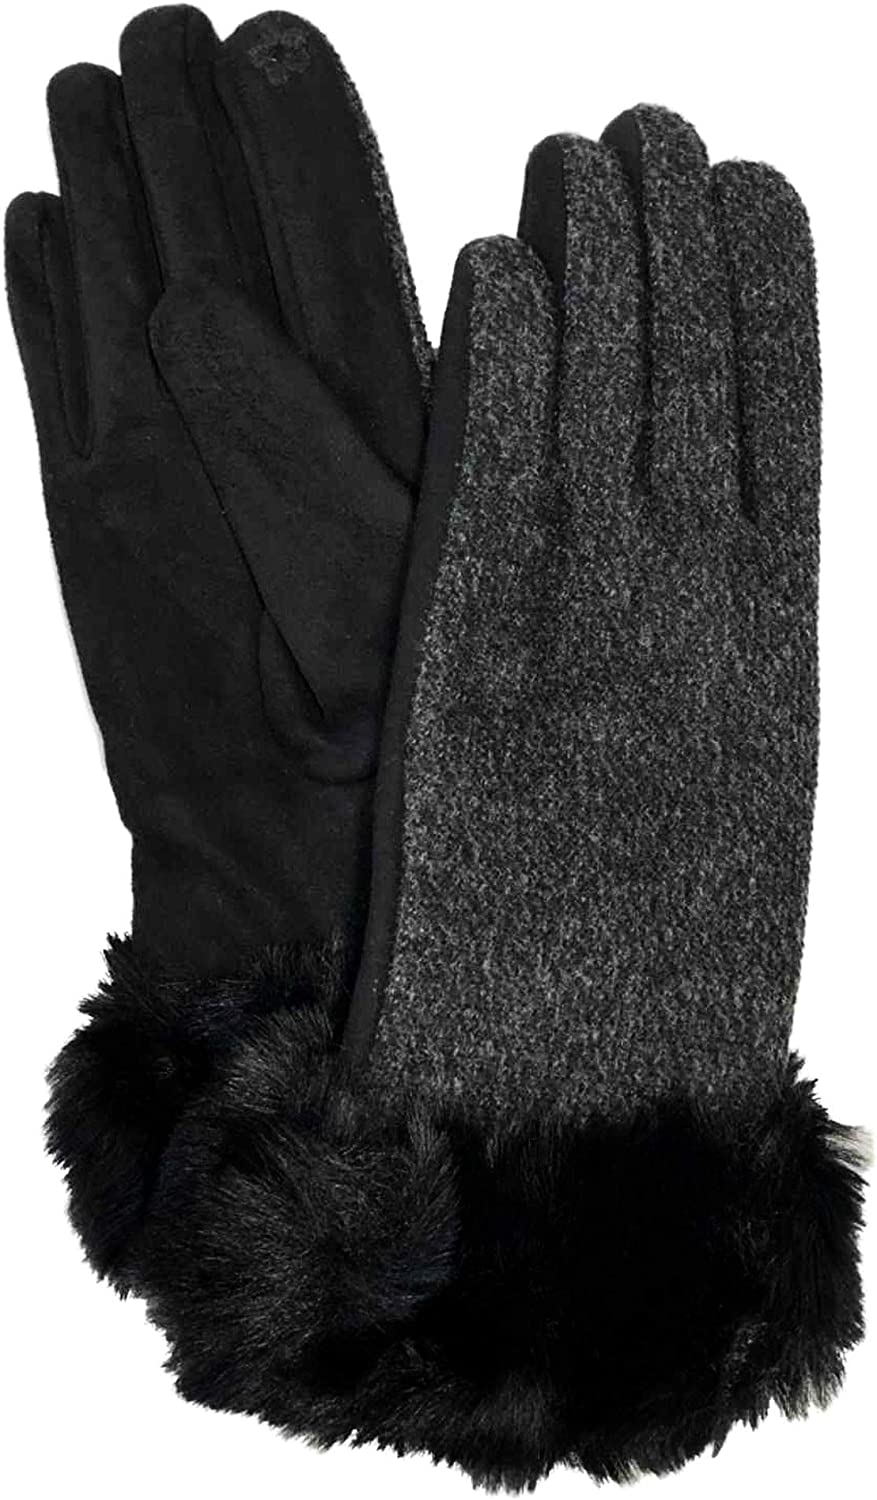 Womens Black Faux Fur Stretch Fit Text & Tech Touchscreen Driving Gloves